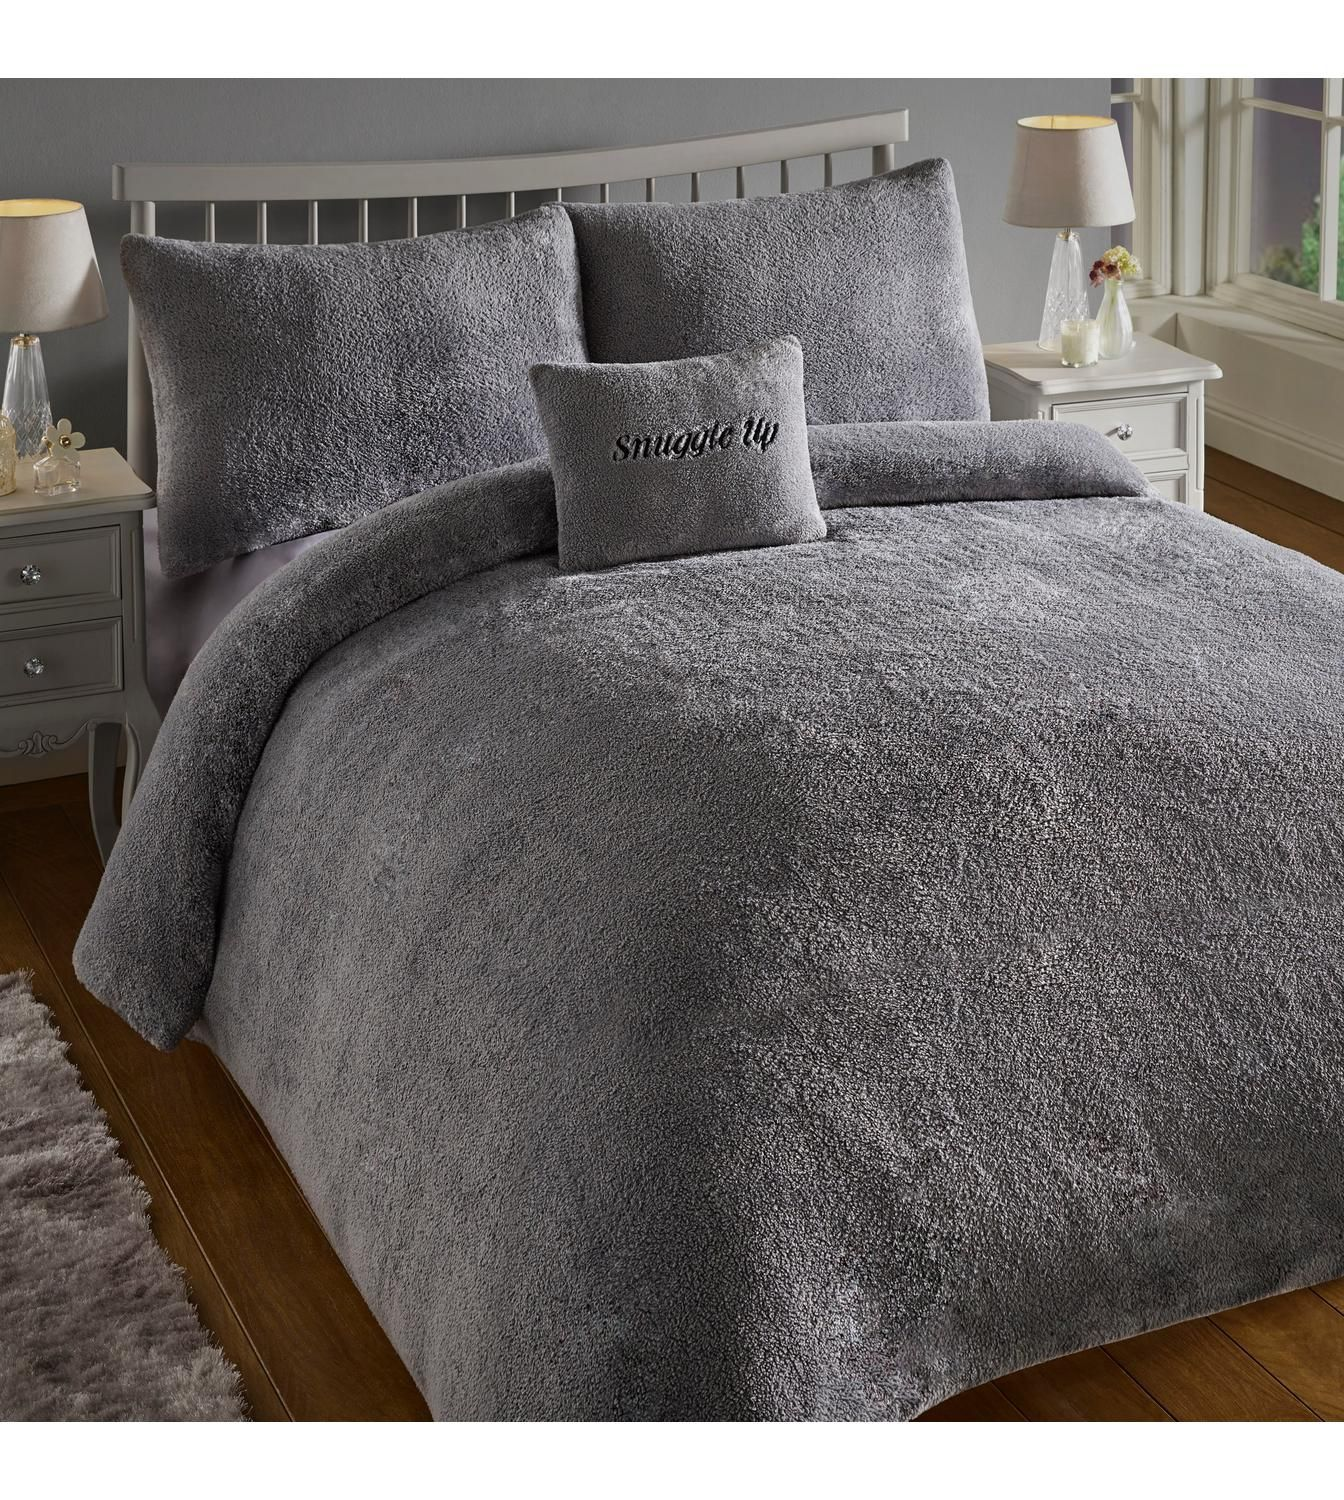 Super Soft Teddy Fleece Duvet Cover Fitted Sheet,Pillowcases Warm /& Cozy